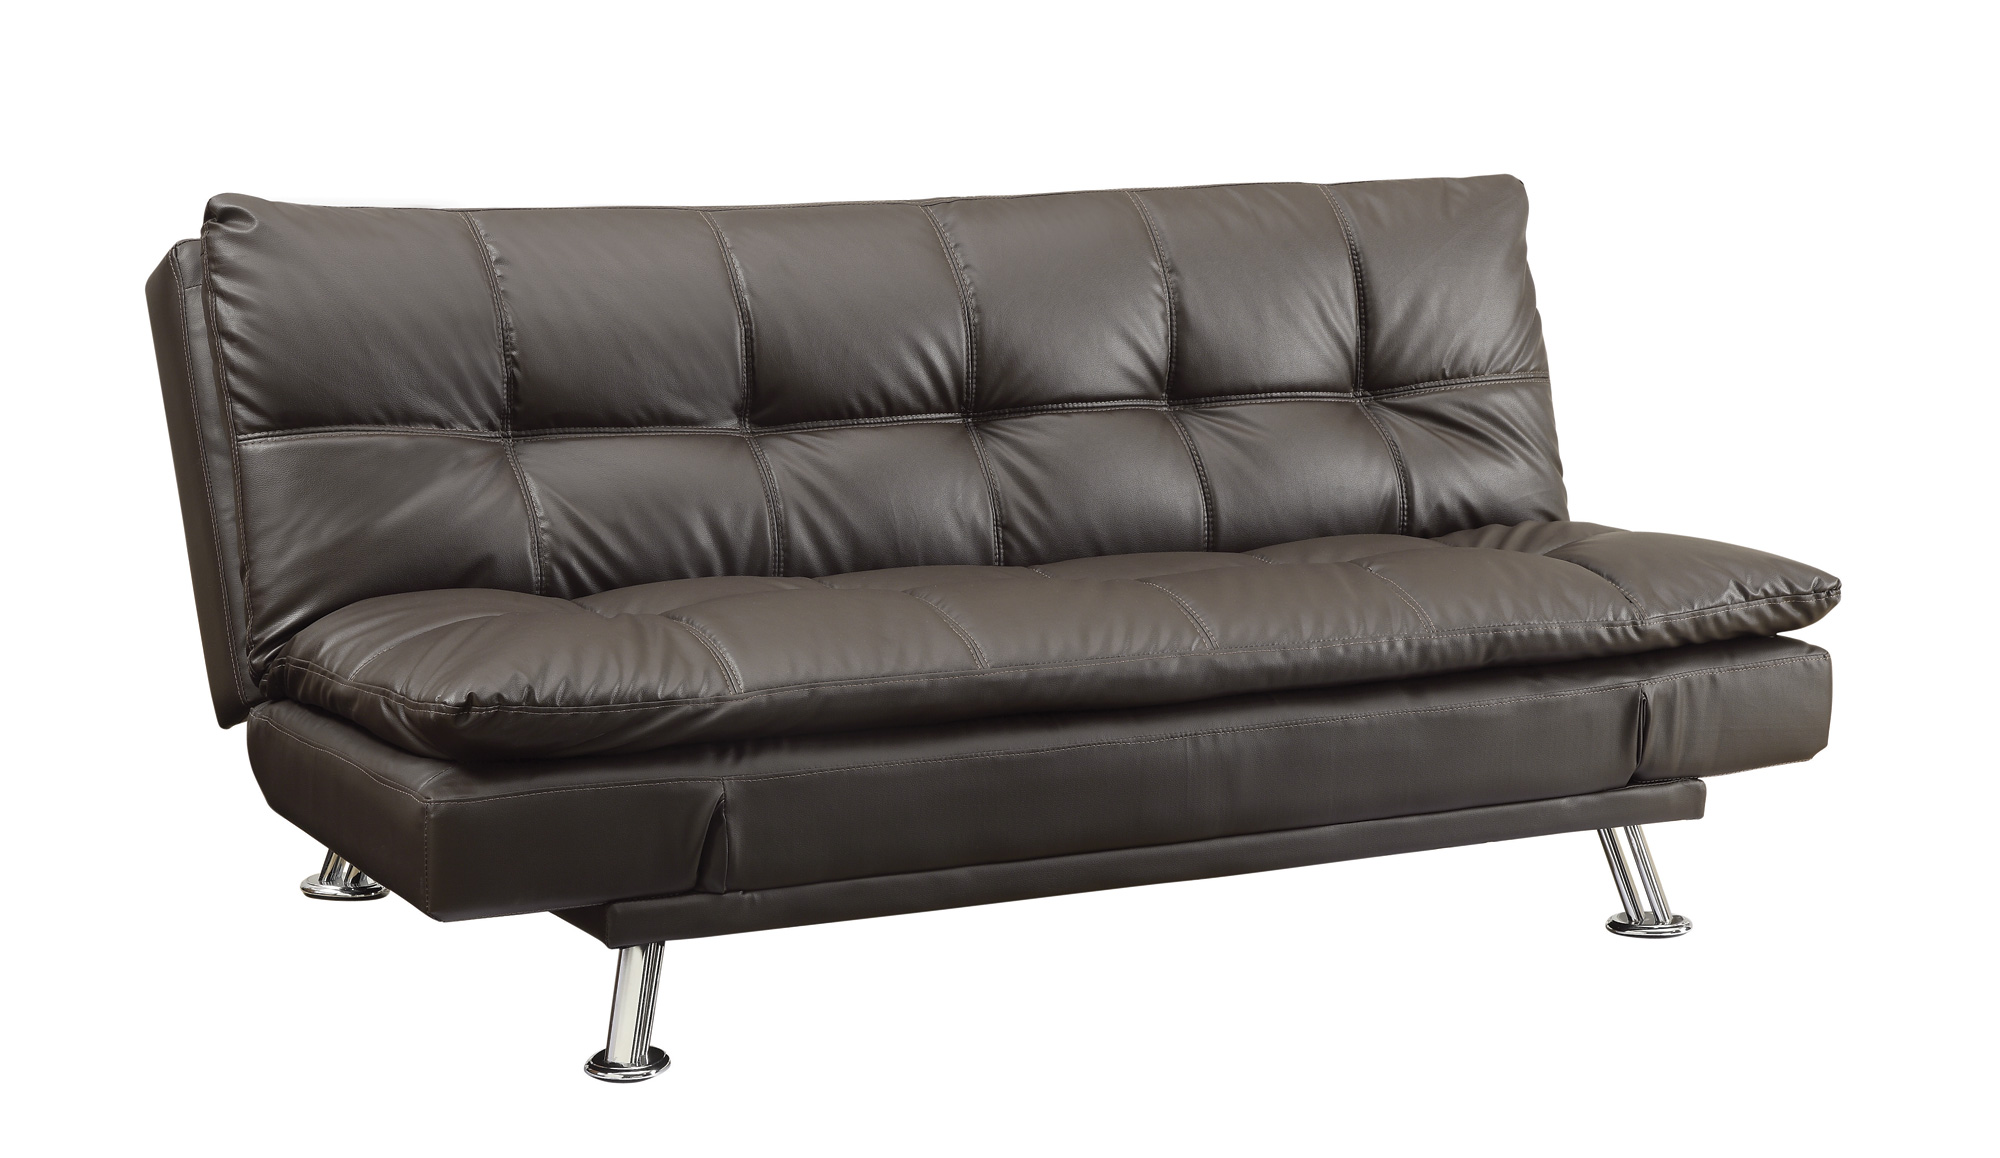 Dilleston Contemporary Brown Faux Leather Chrome Sofa Bed